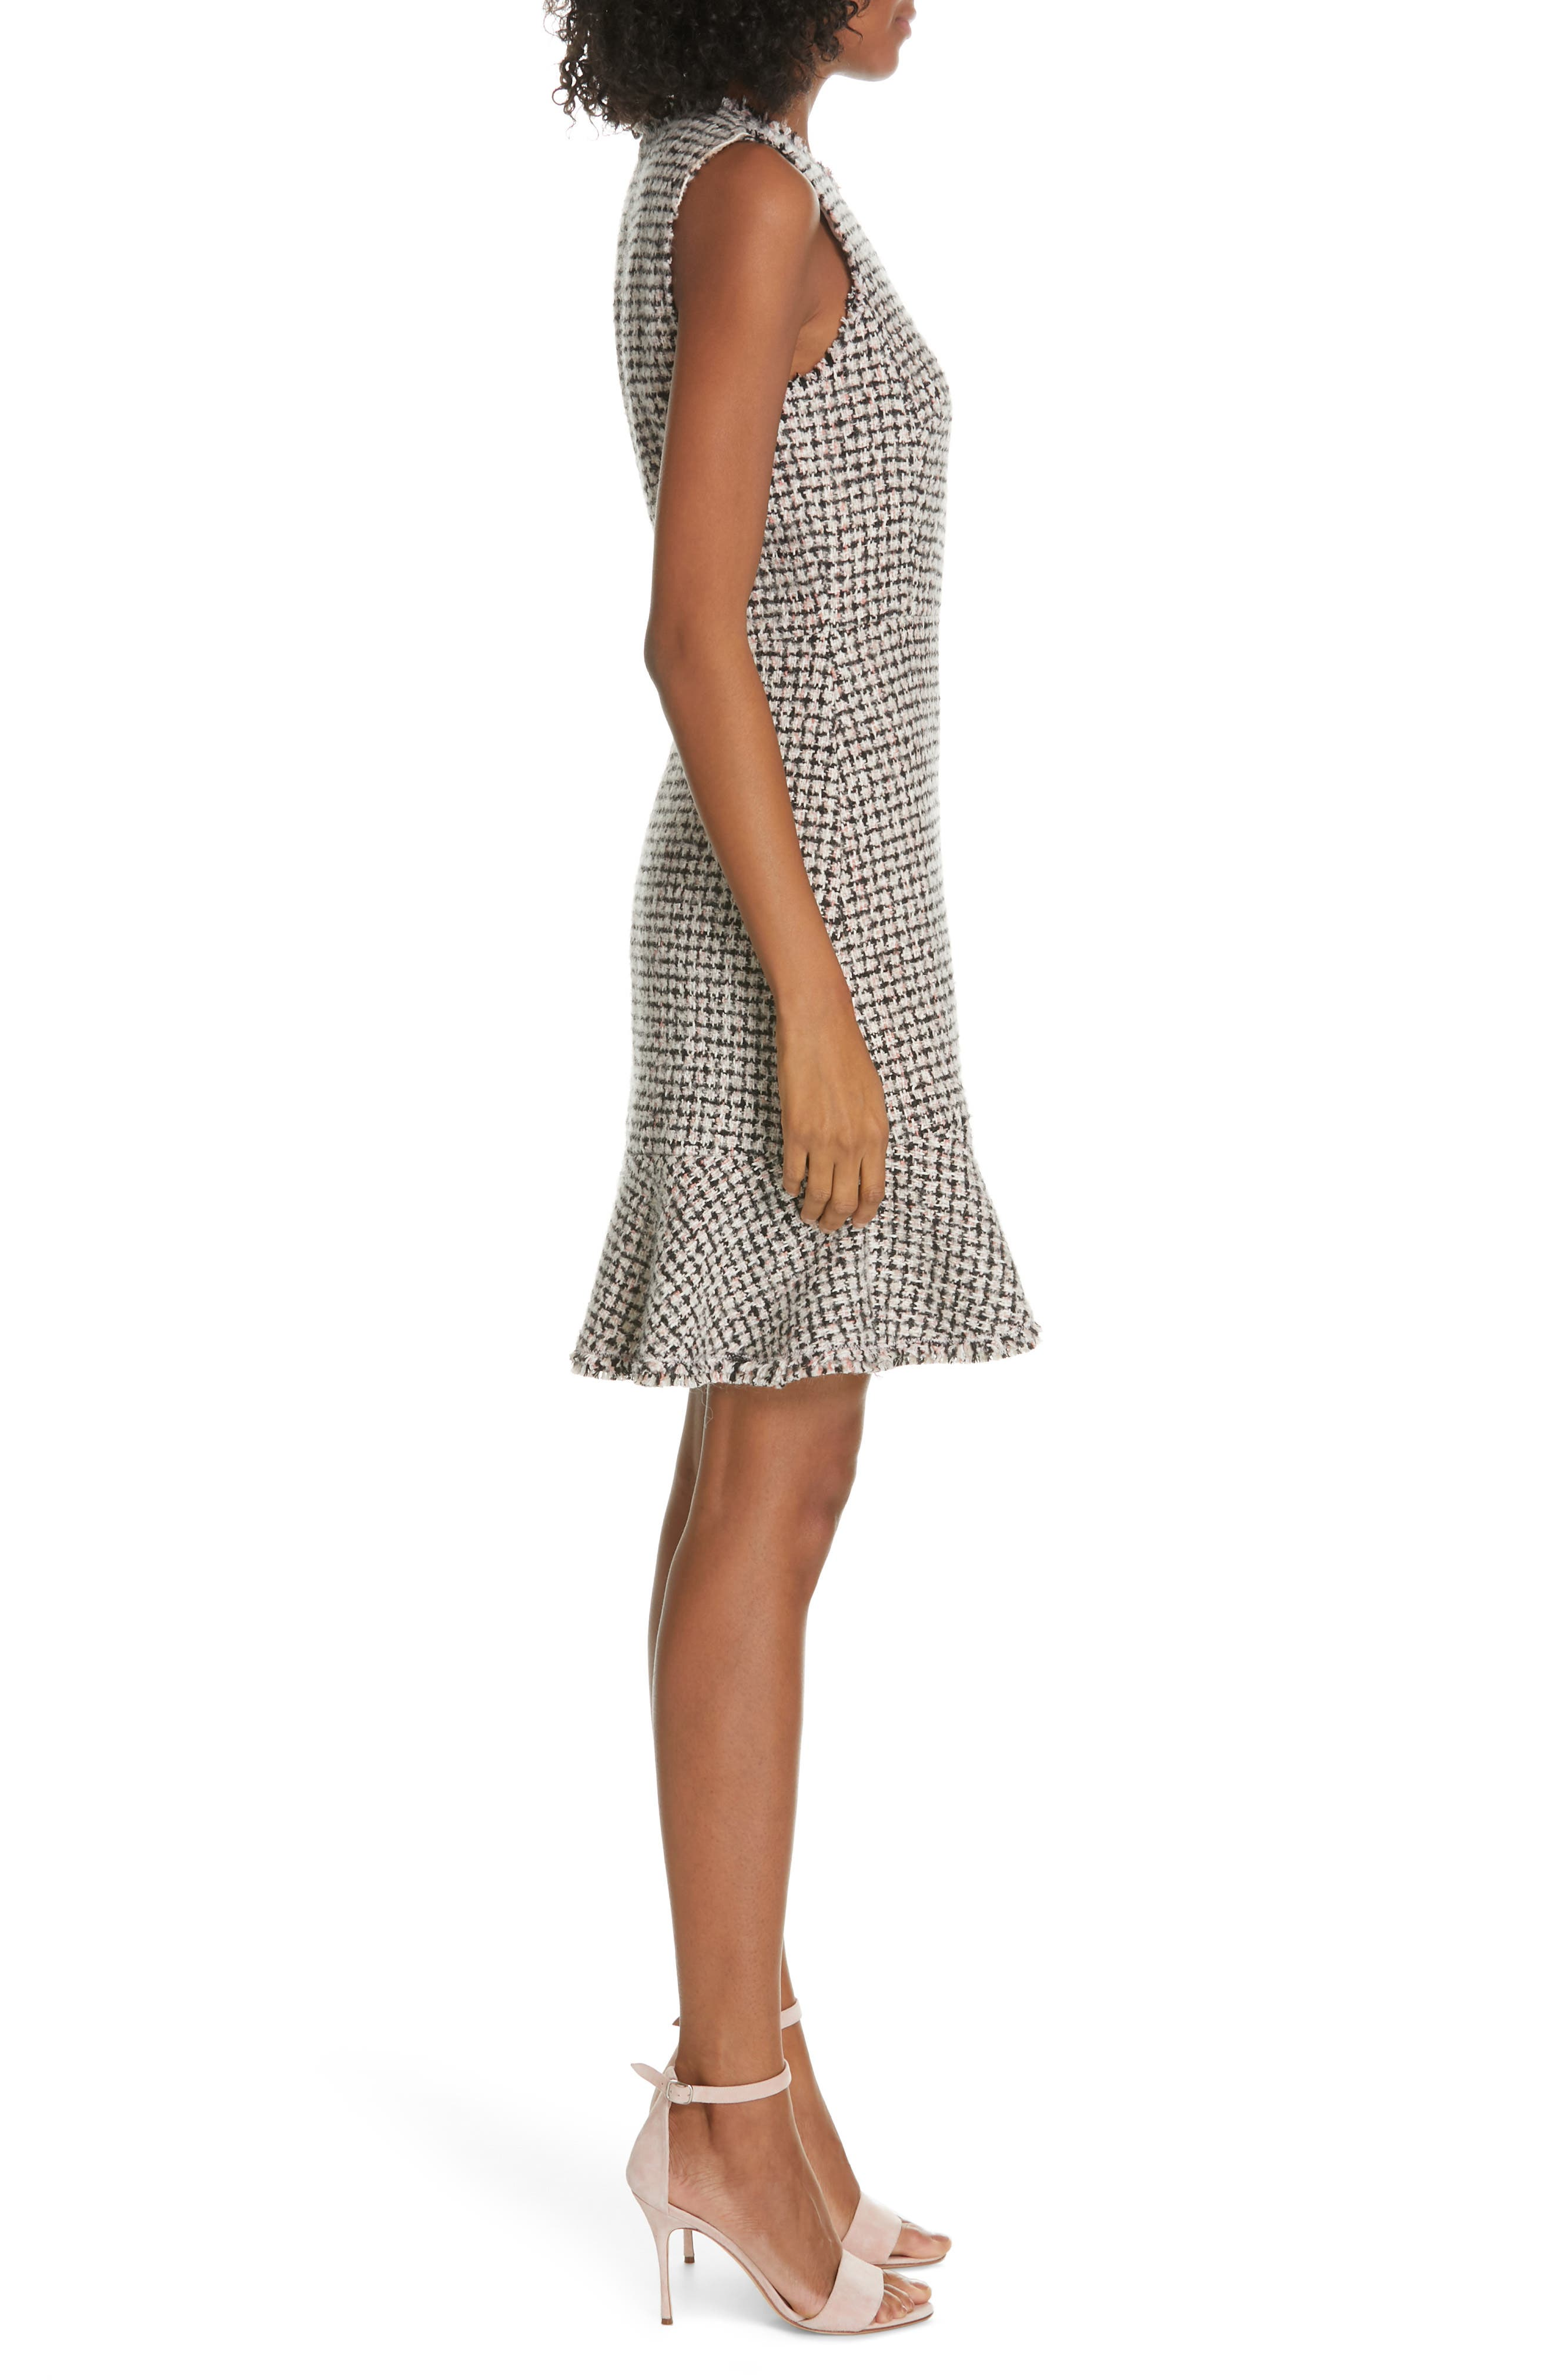 REBECCA TAYLOR, Houndstooth Tweed Dress, Alternate thumbnail 3, color, BLACK/ PINK COMBO